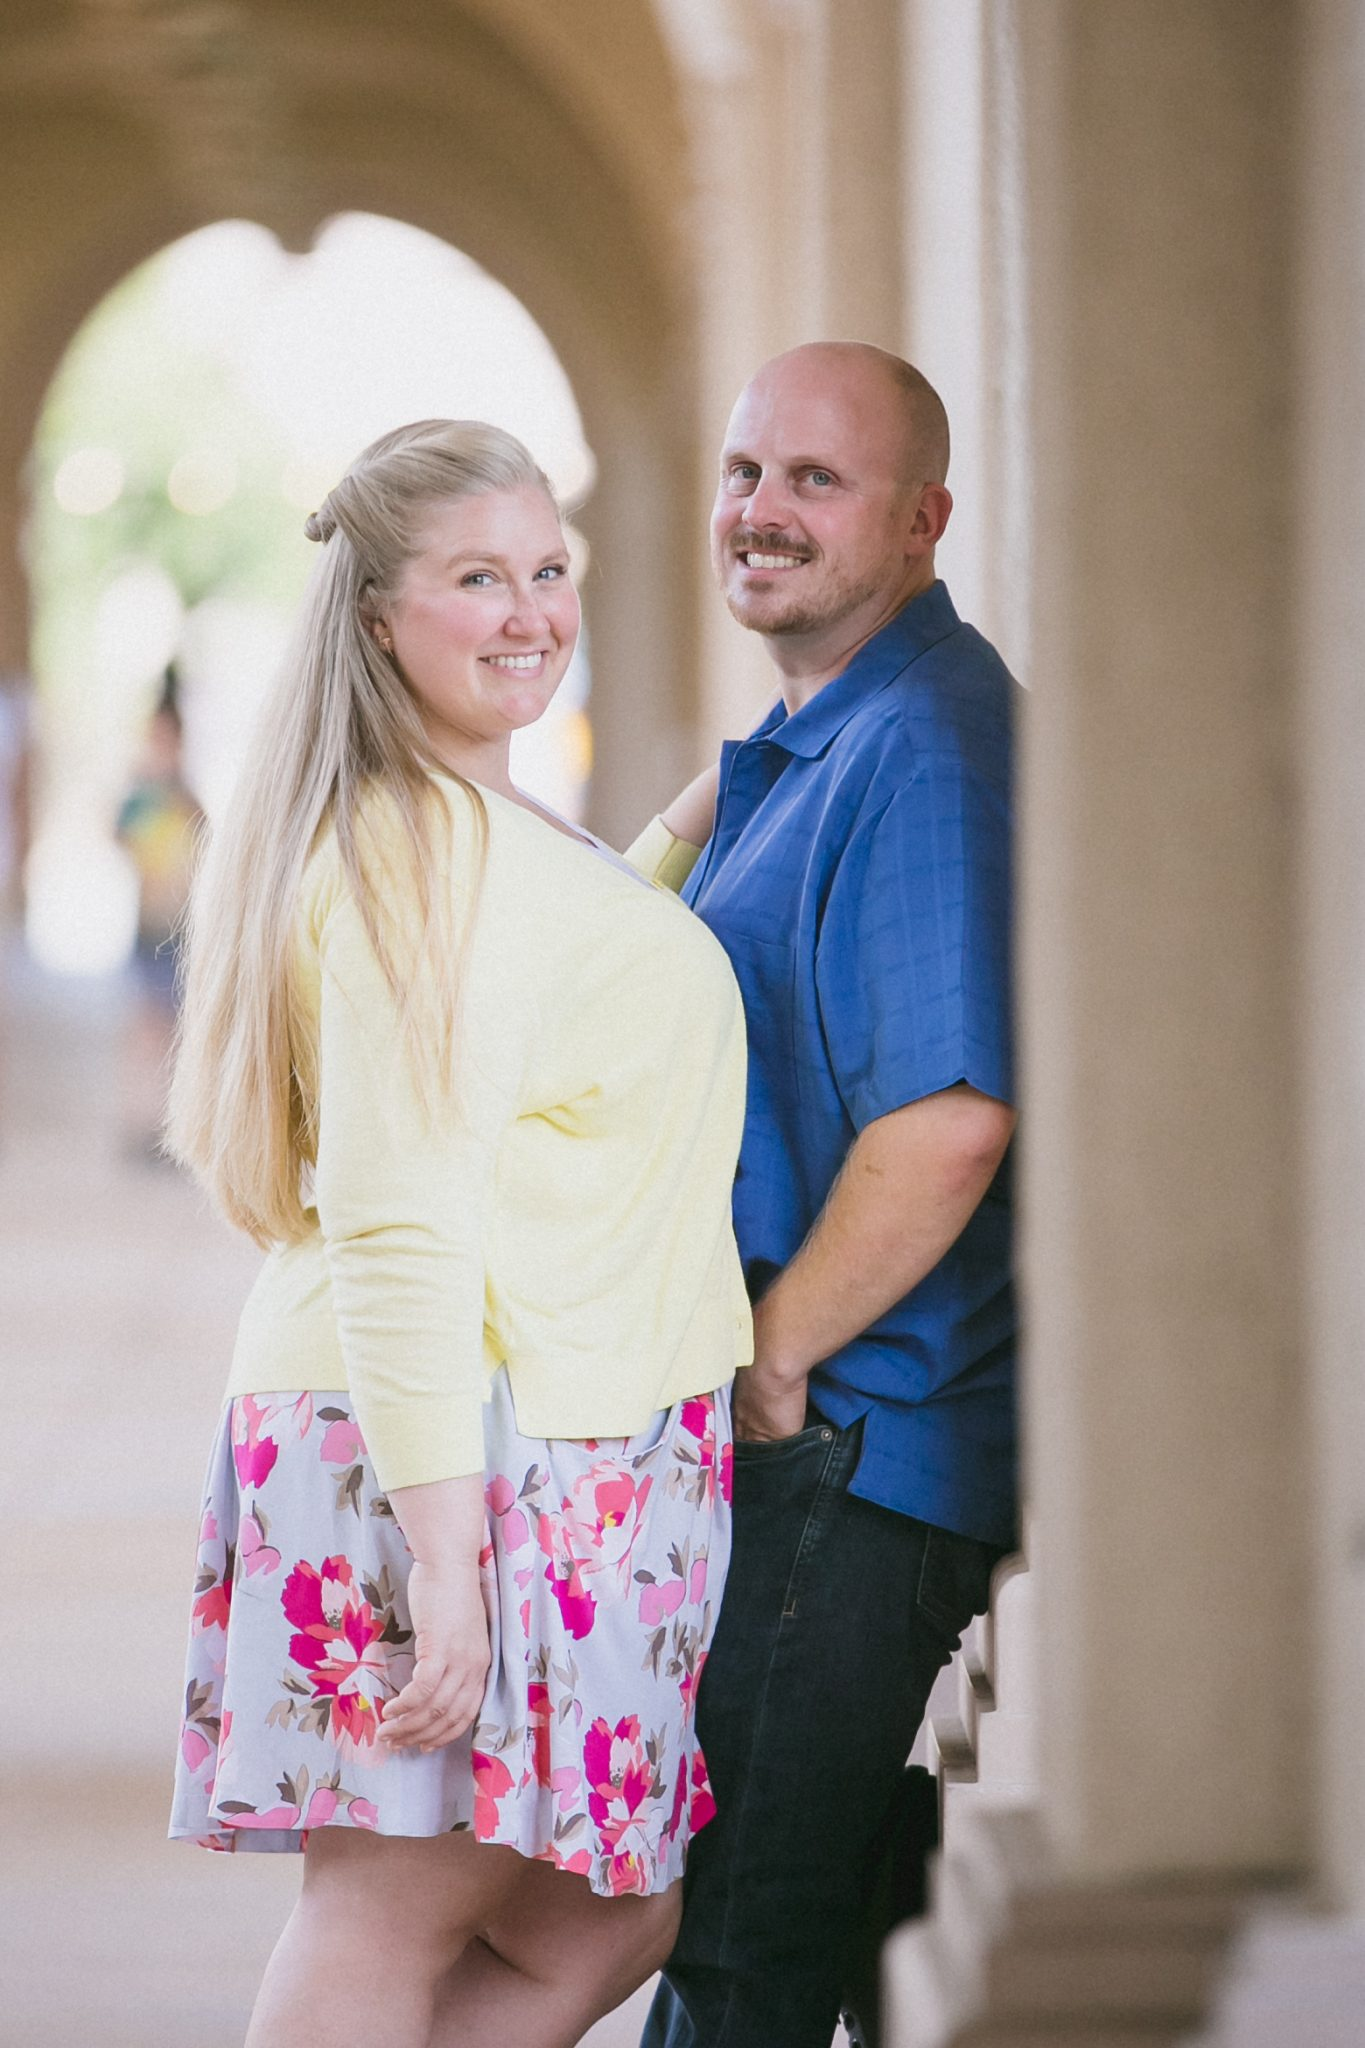 Woman in yellow sweater and pink skirt with man in blue shirt